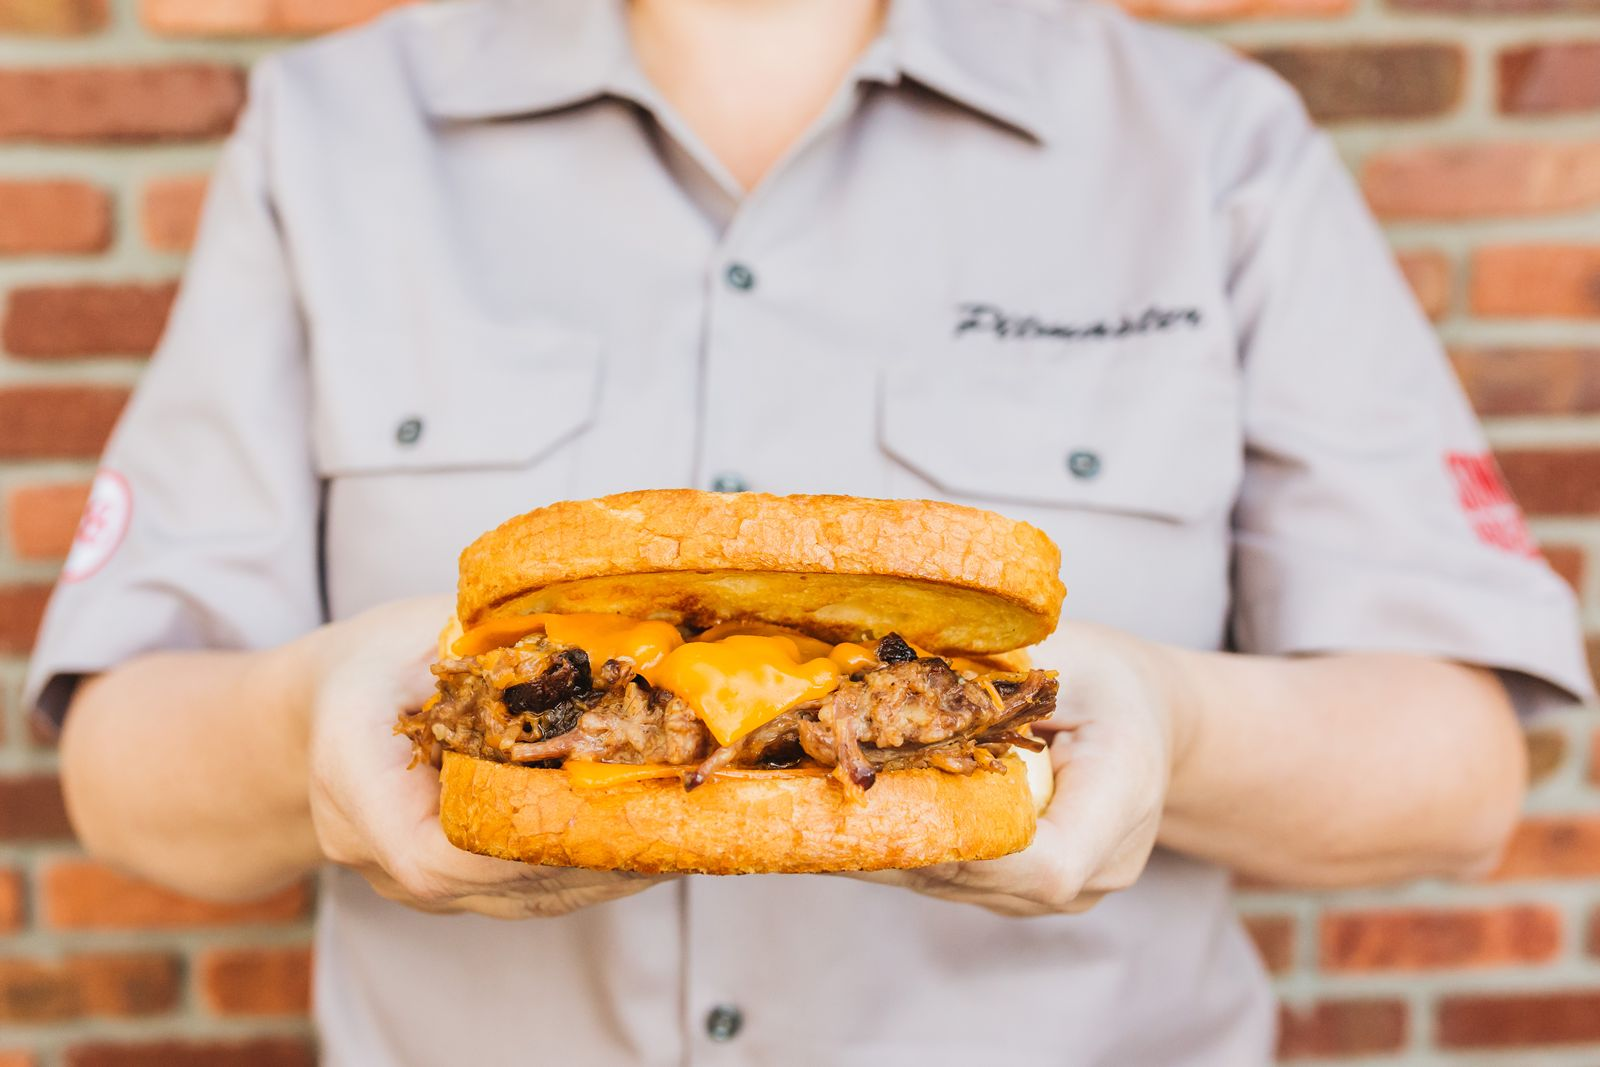 Sonny's BBQ Introduces New Sandwich That Lives Up To The Hype: The Real Deal Rib Sandwich